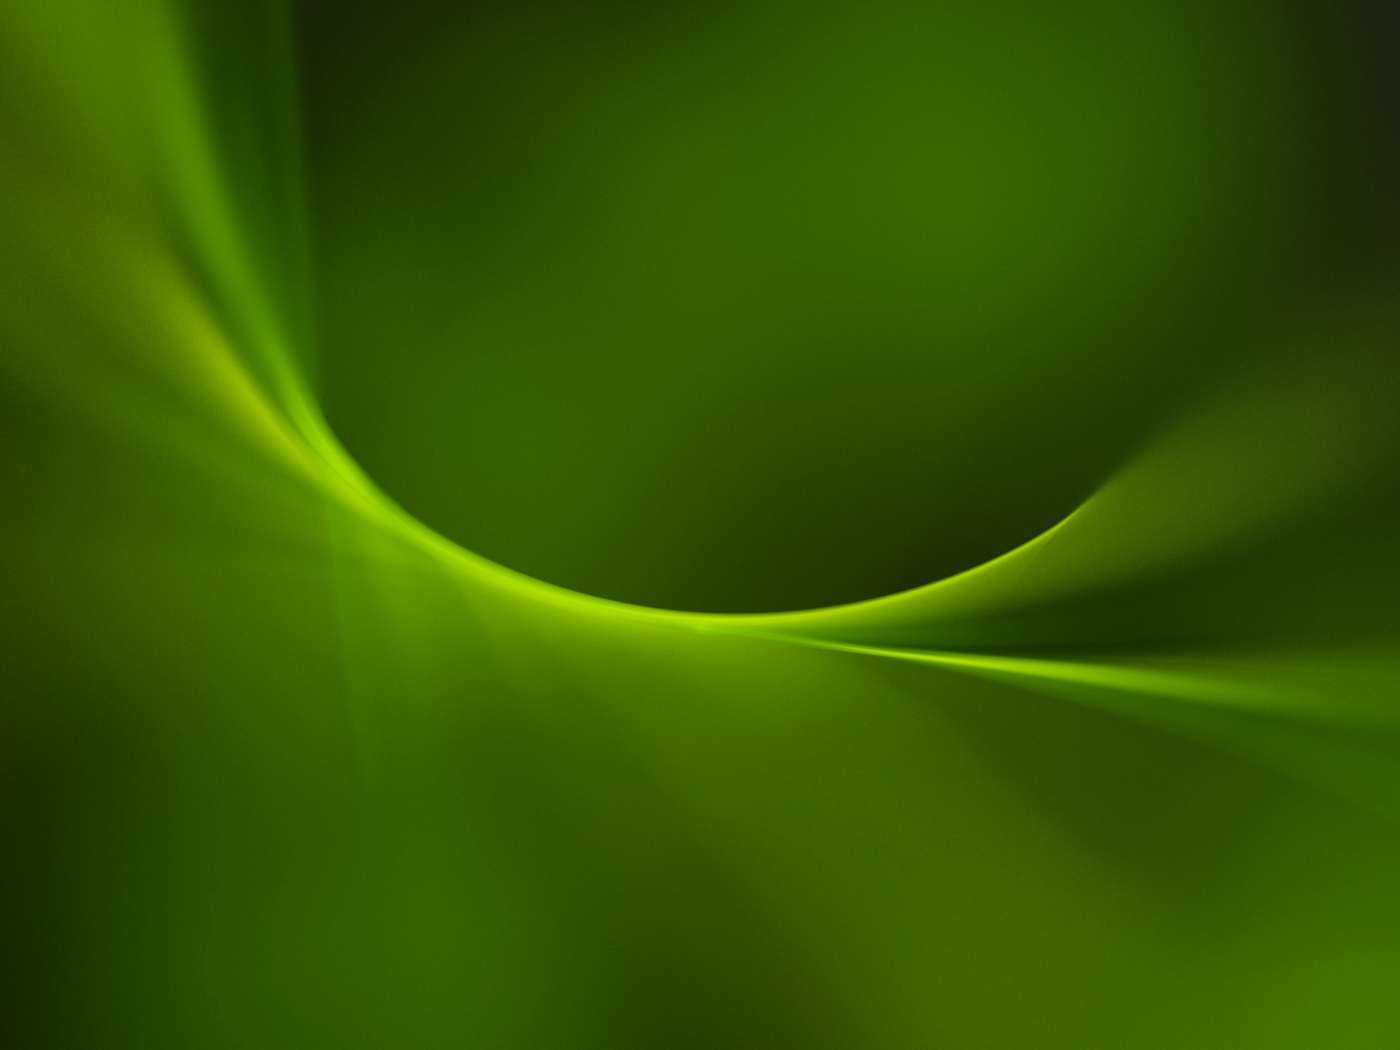 Download 1400x1050 Wallpaper Simple Green Curves Abstract